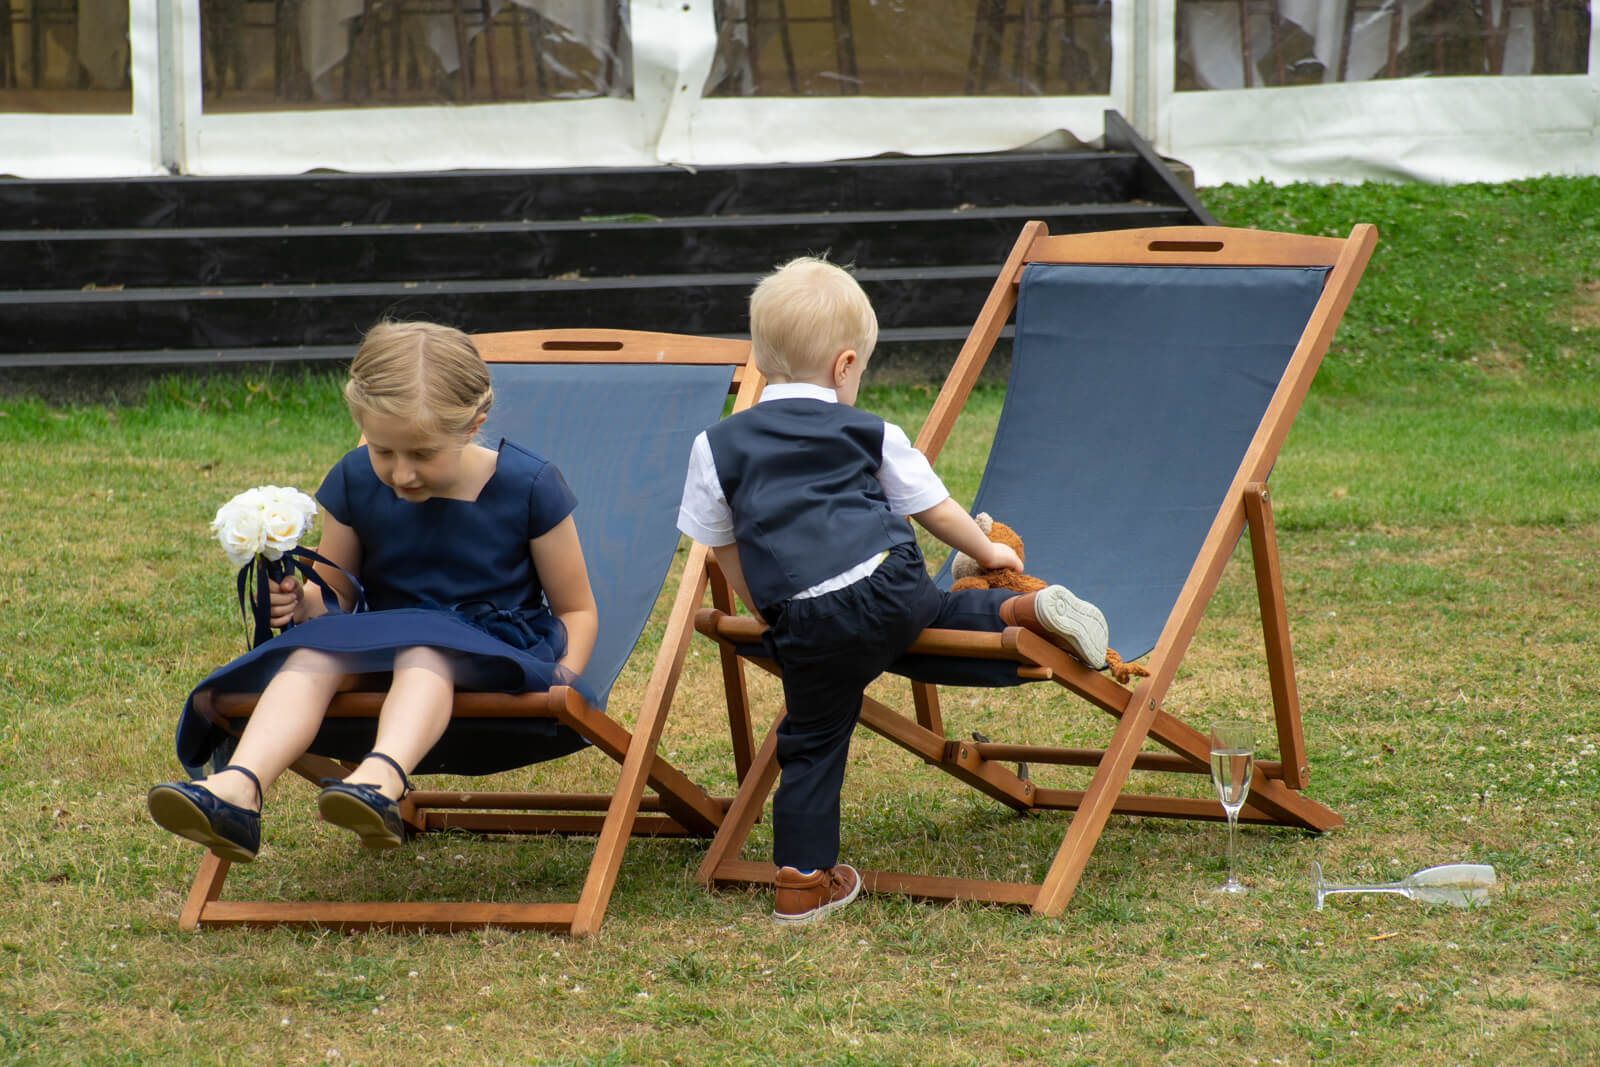 Young boy and girl in formal wear plaing on deck chairs